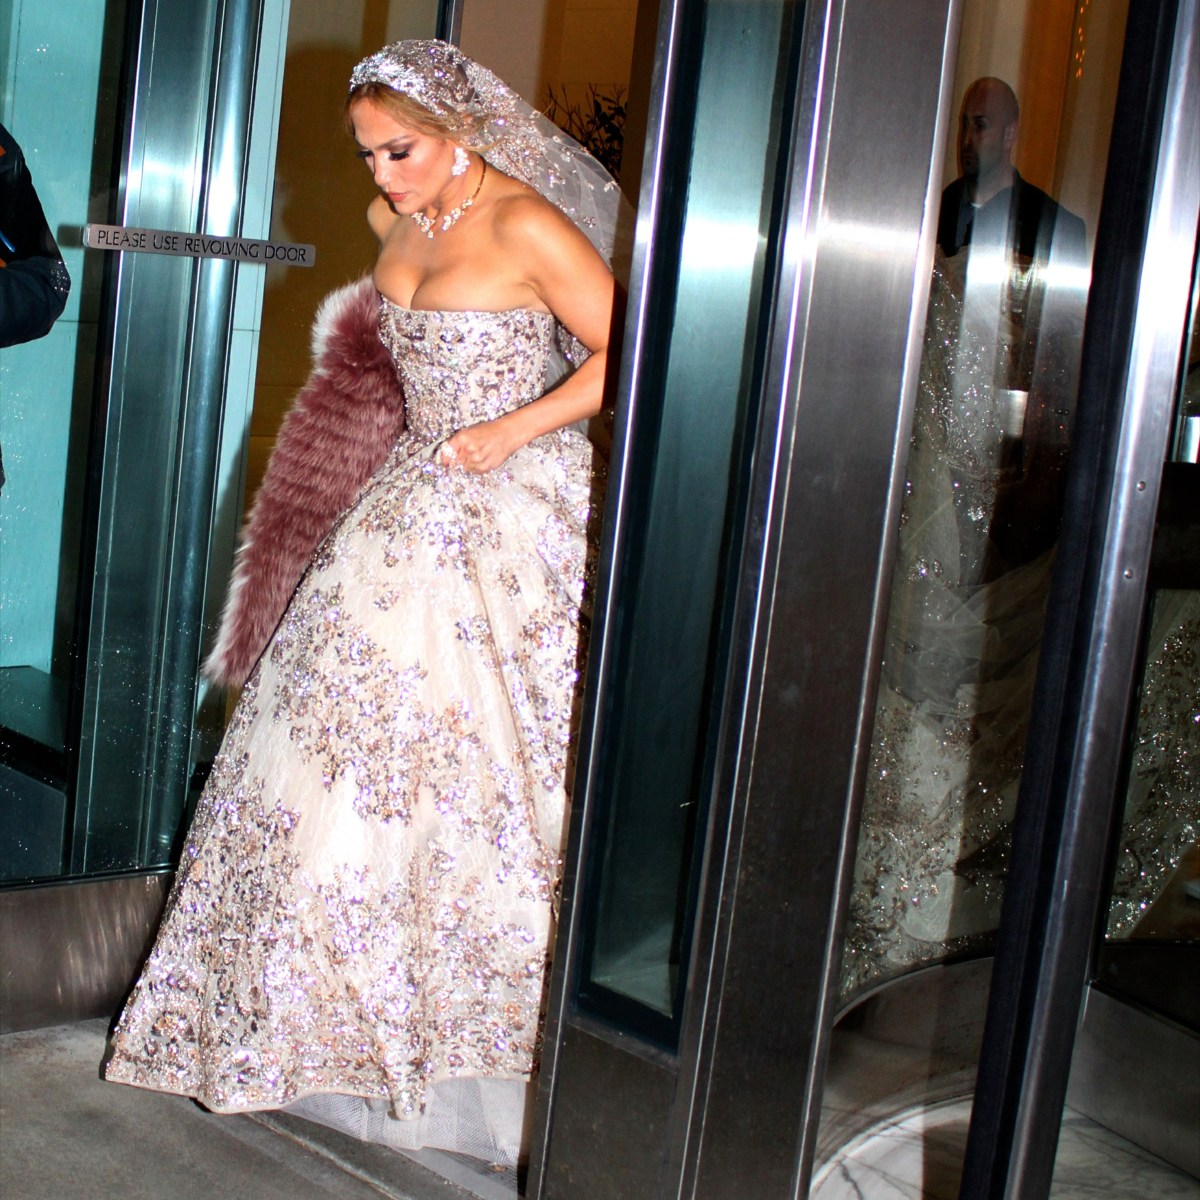 Jennifer Lopez Stuns in Lavish Wedding Gown While Filming Scenes for New Movie 'Marry Me'